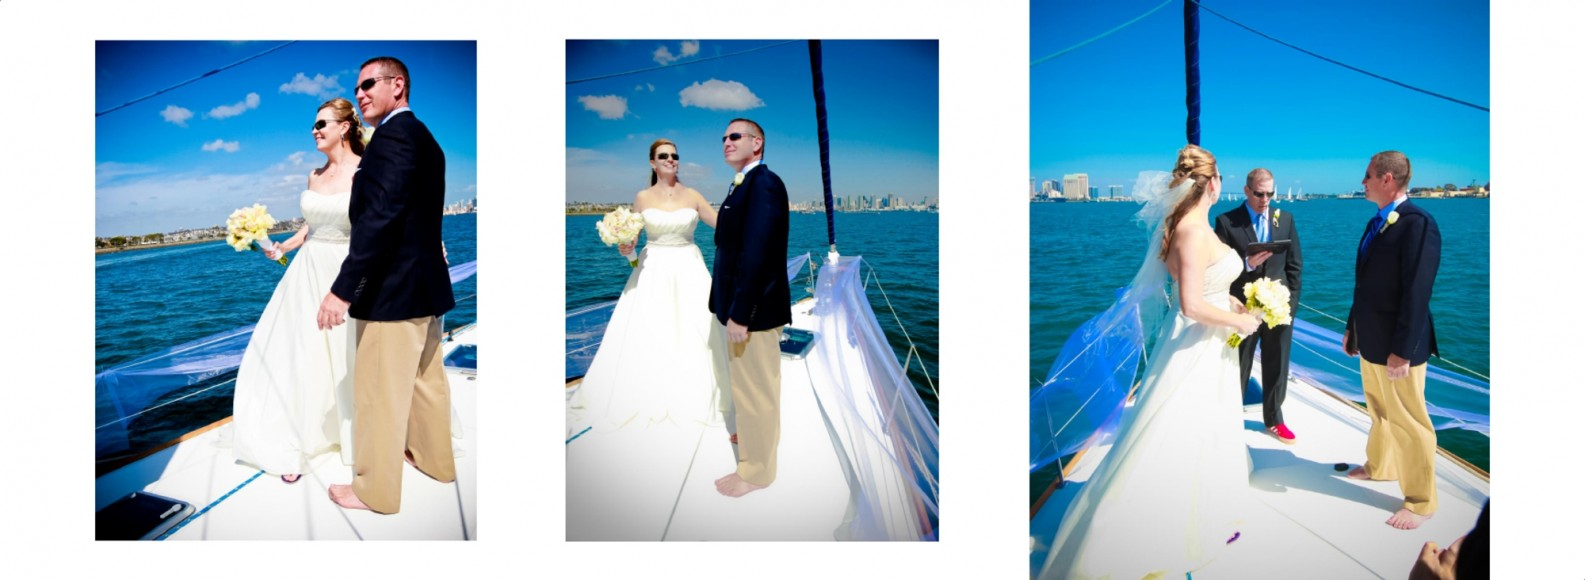 Laura and Davids Wedding Book - San Diego Yacht Wedding by Wedding Photographers Andrew Abouna - Pages 12-13